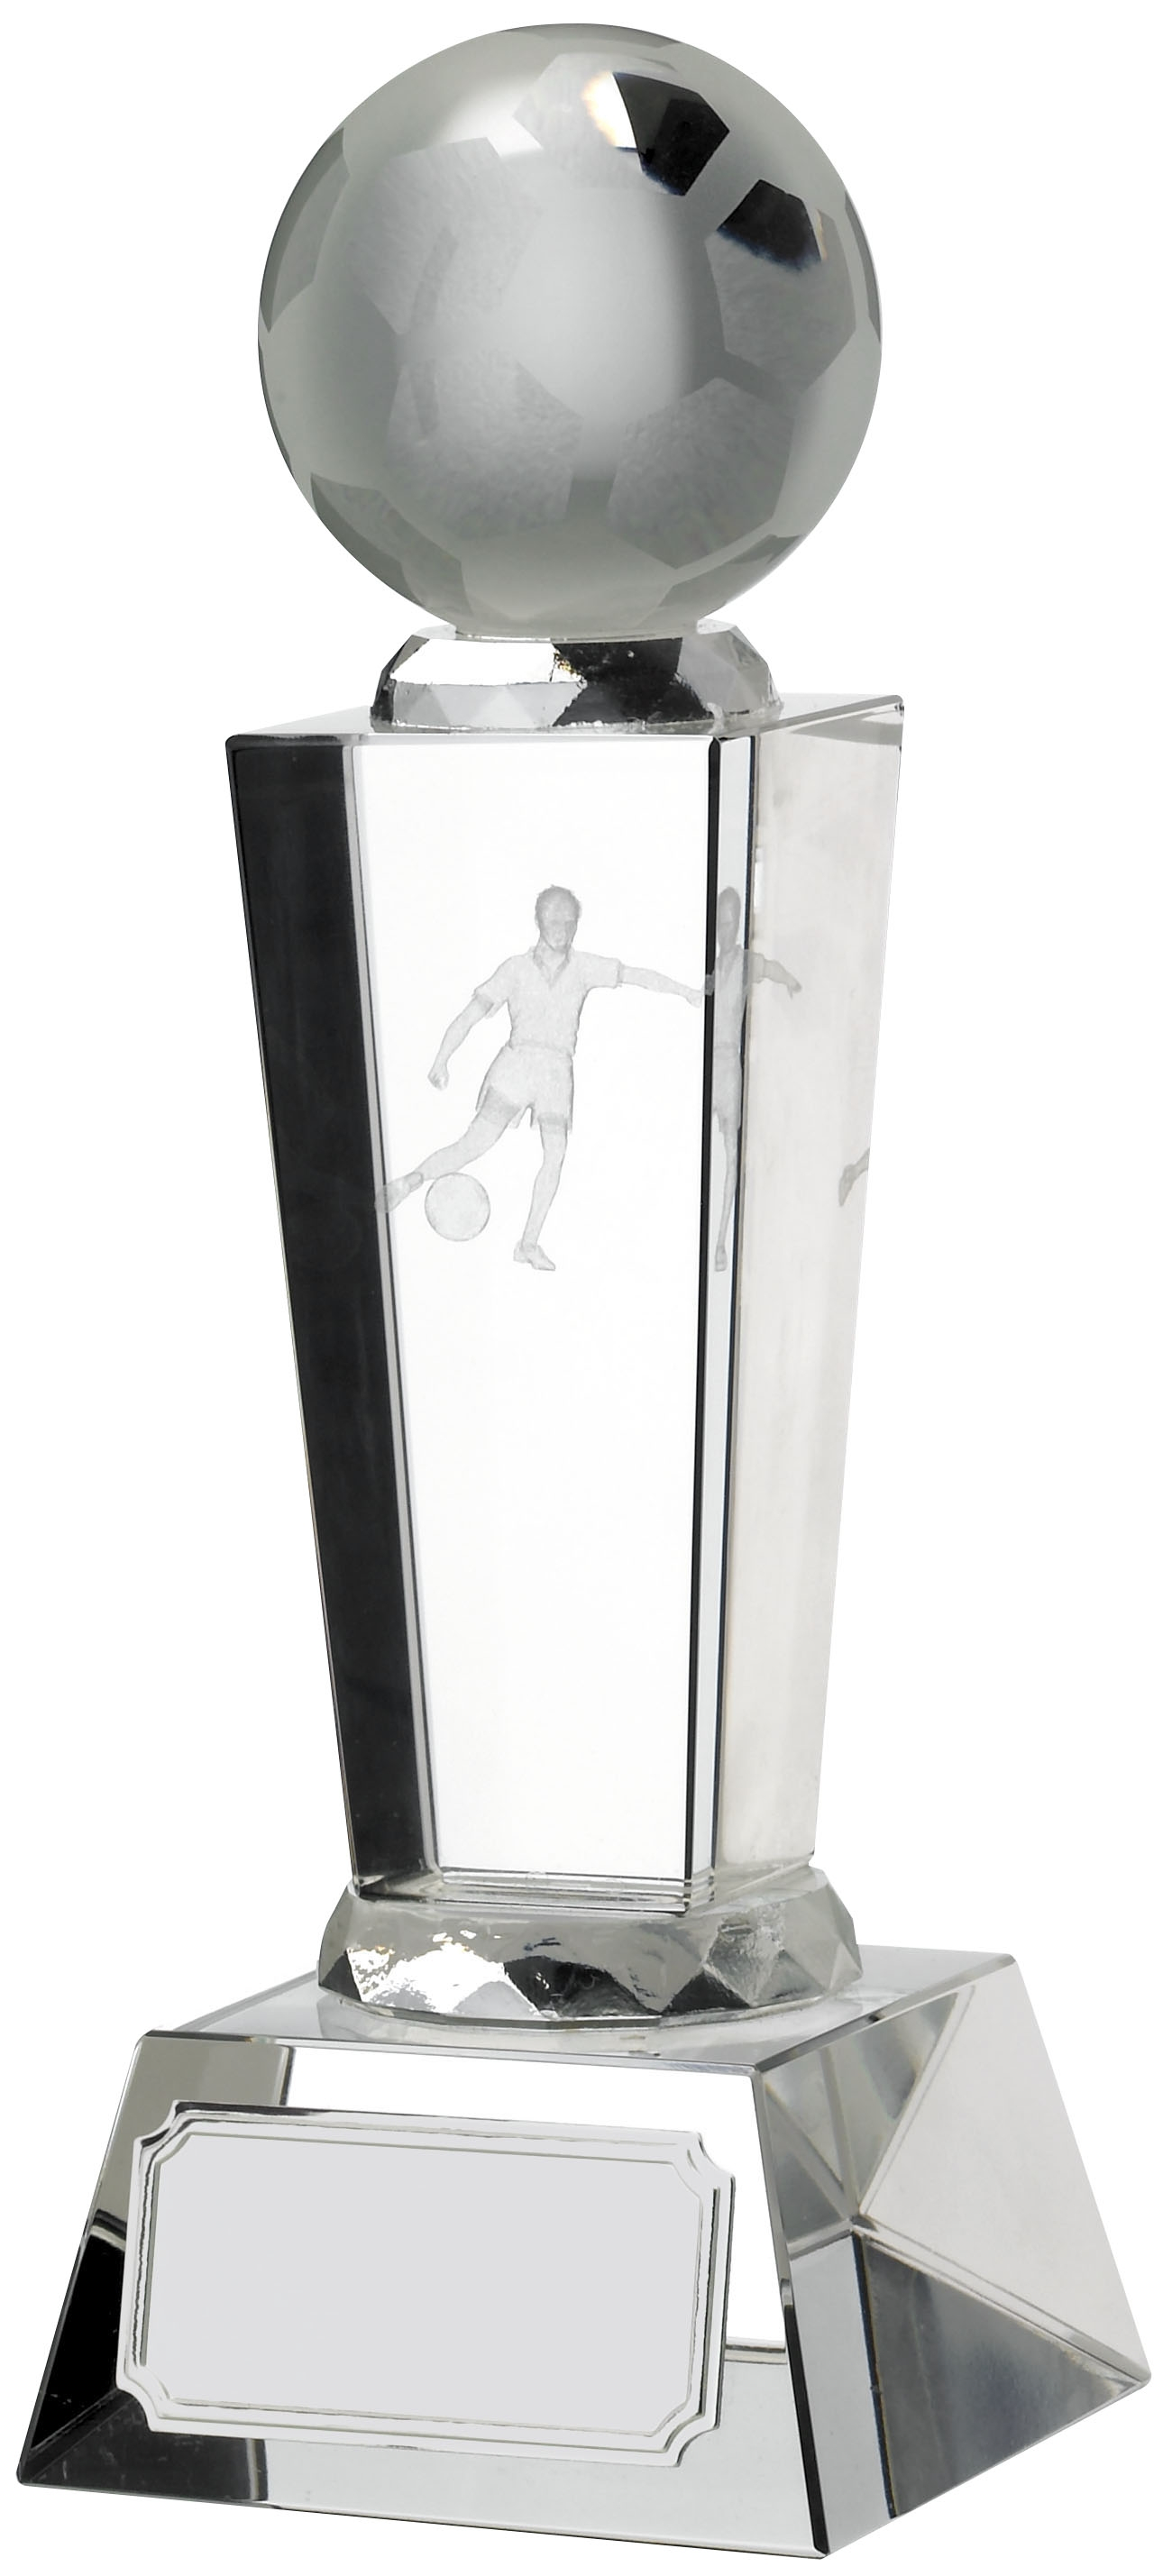 6.75inch FOOTBALL GLASS WITH BALL